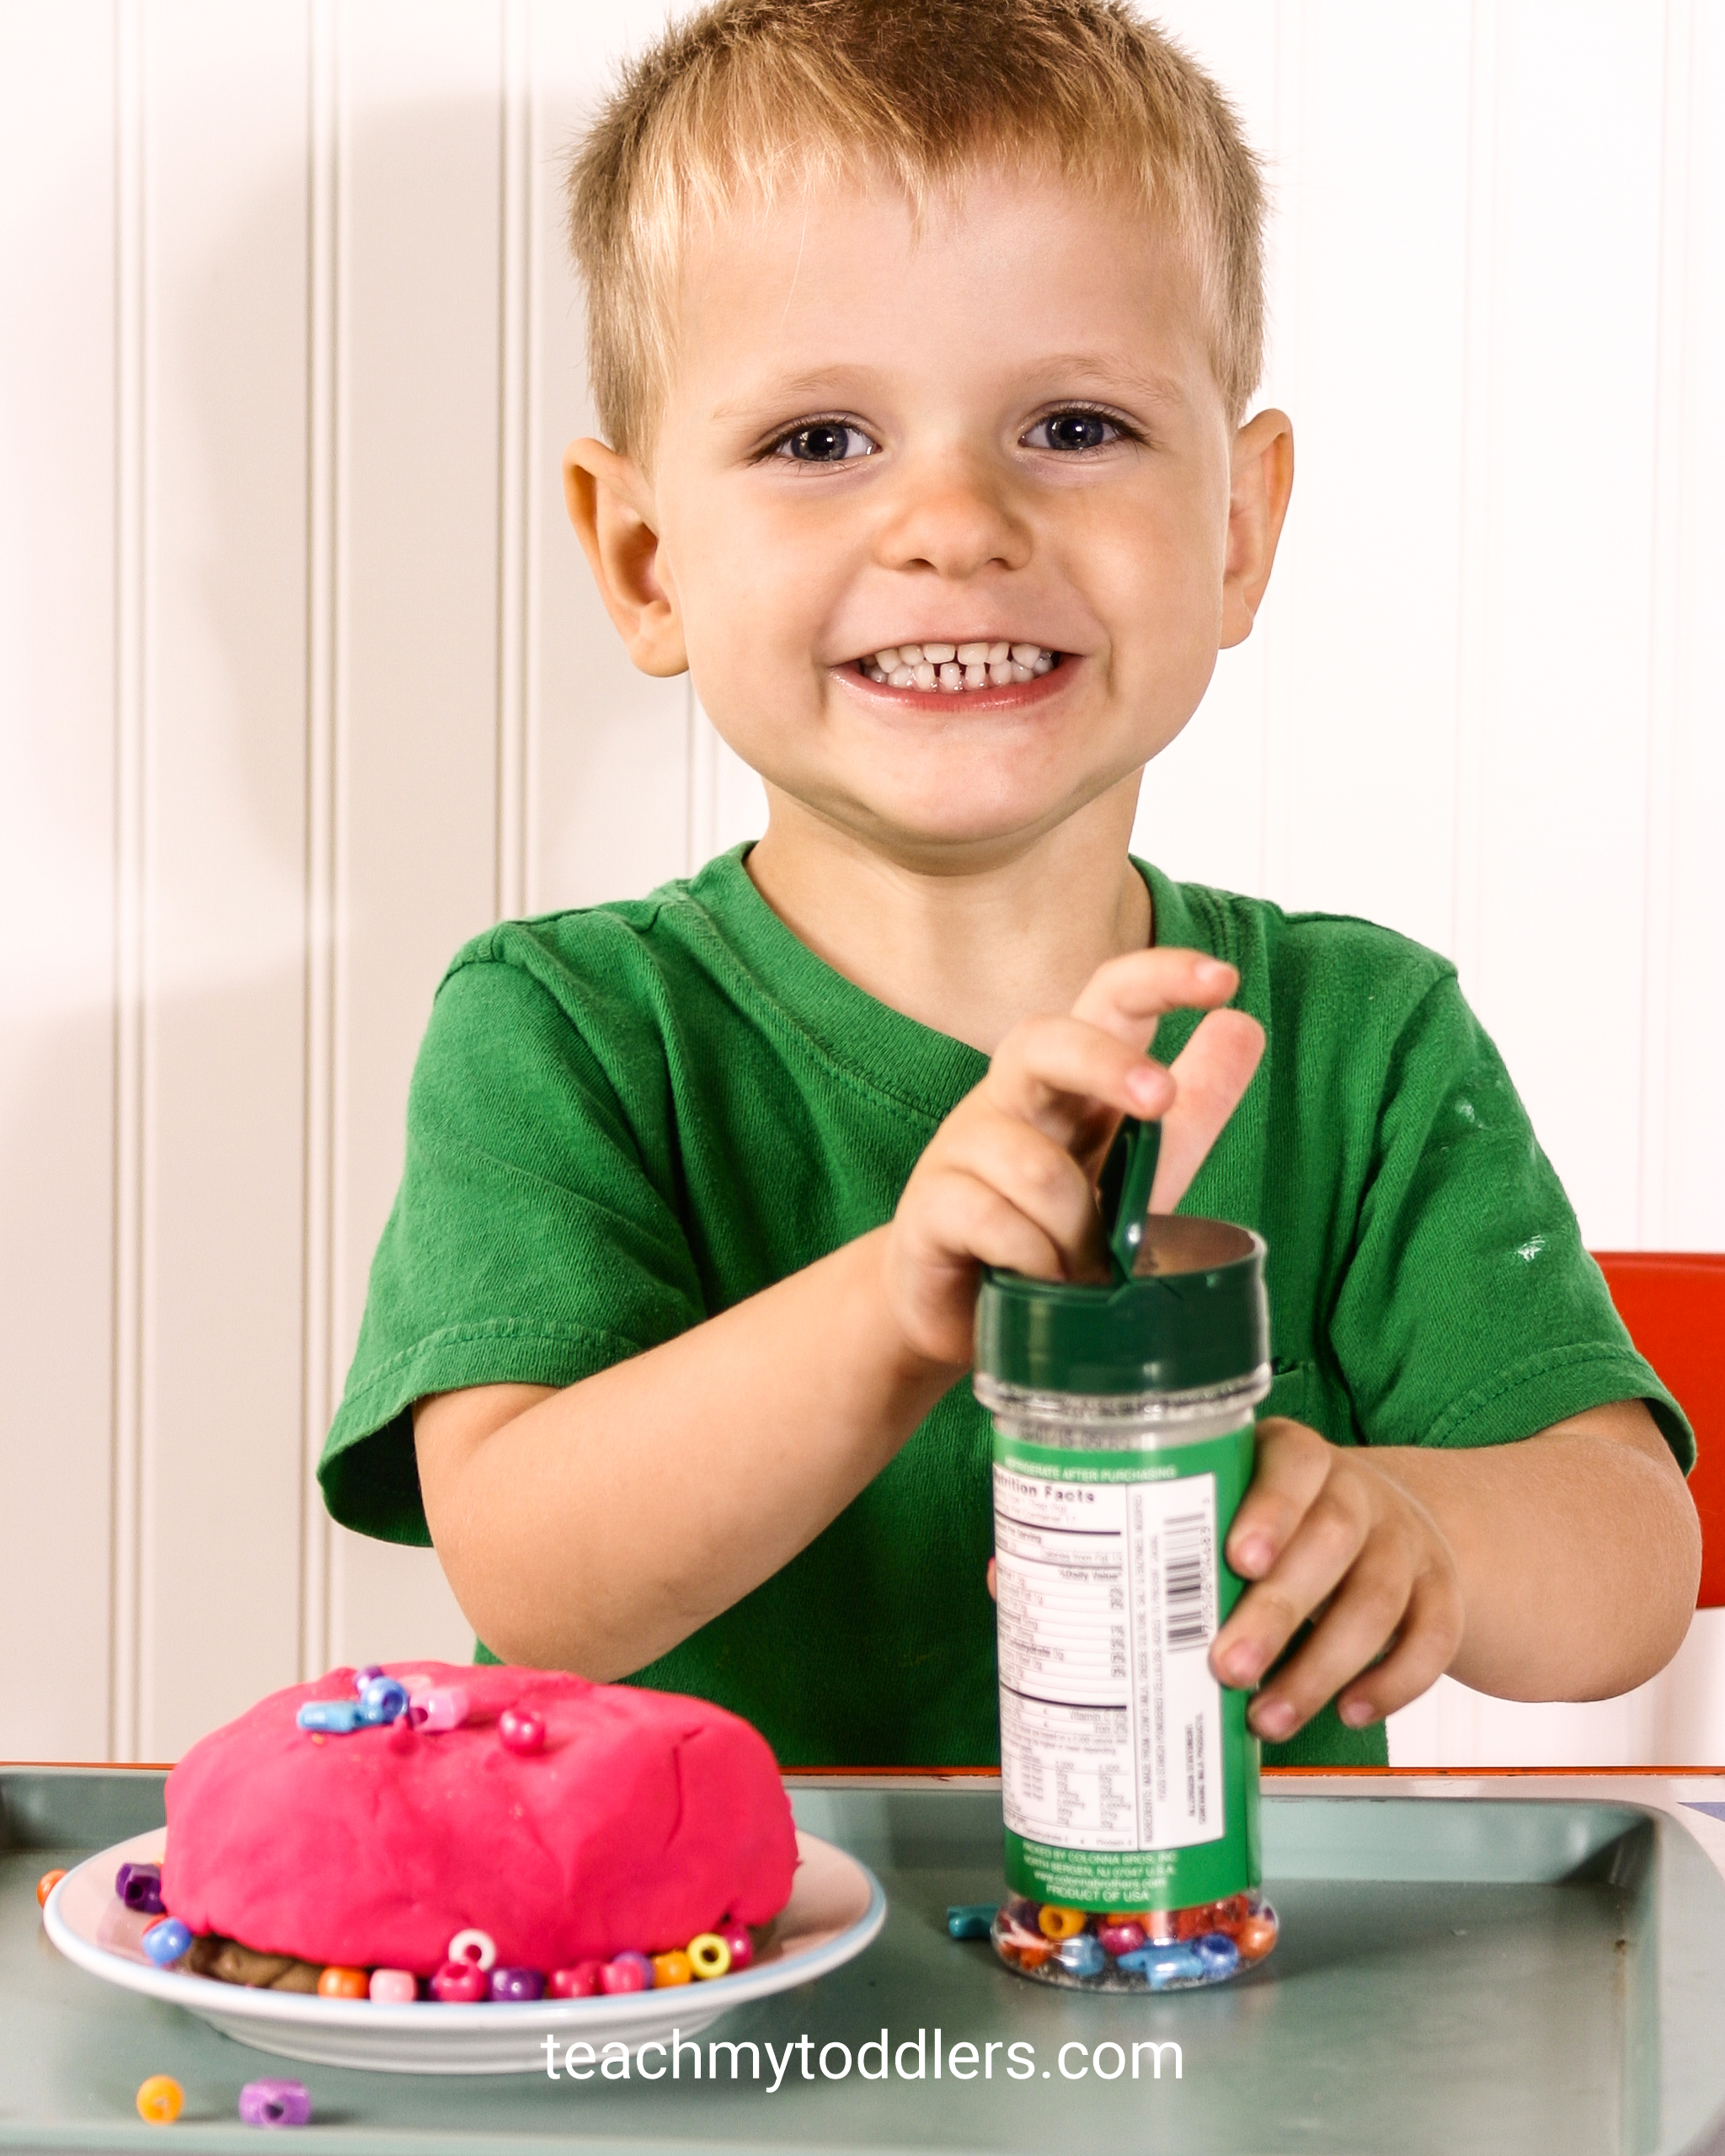 Find out how to use these fun kitchen activities to teach toddlers the letter k